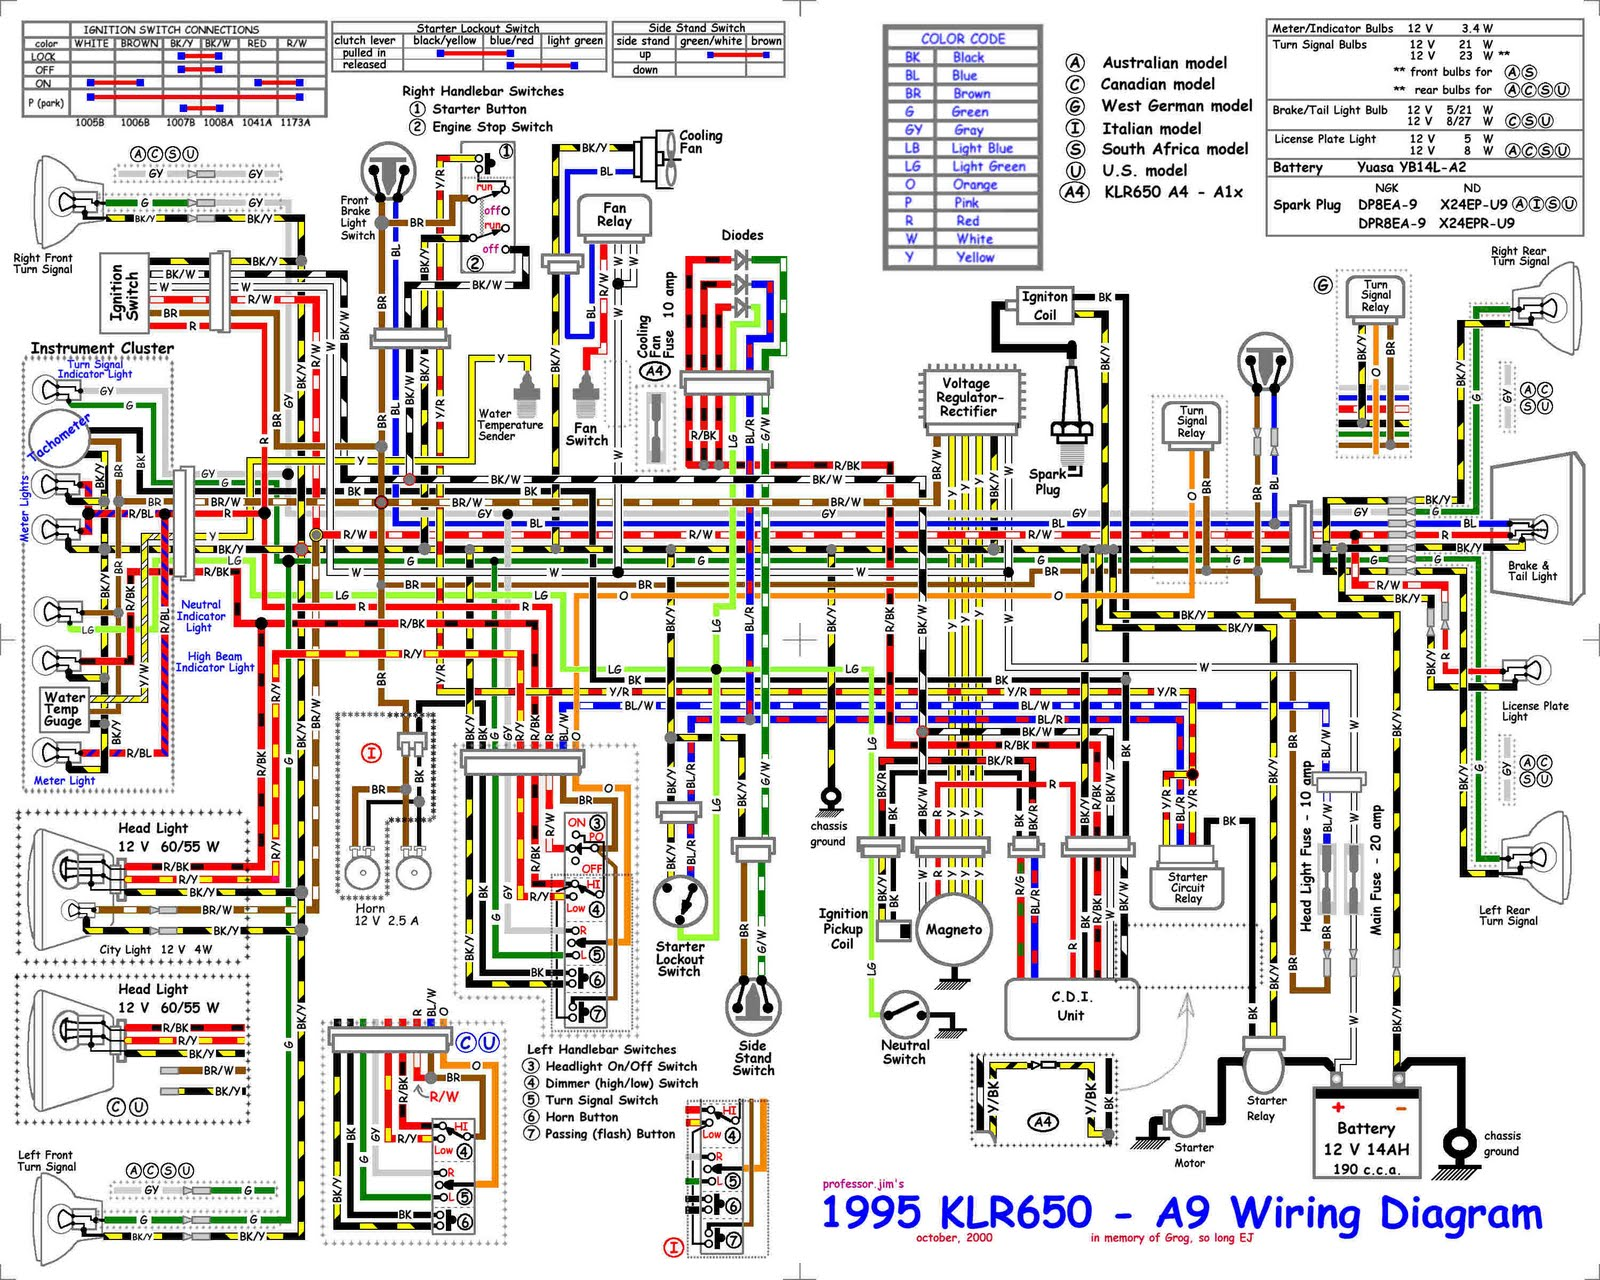 volkswagen jetta ac wiring schematic with Abs Controller 2003 Monte Carlo on 2013 Jetta Belt Diagram also 0ymos 2000 Jetta Gl Heater Fan Does Not Blow Air Fuses Blower Motor further Dodge Caliber Engine Schematic additionally Vw Beetle Wiring Diagram 1974 likewise Wiring Diagram For A 2002 Honda Civic Free Download.